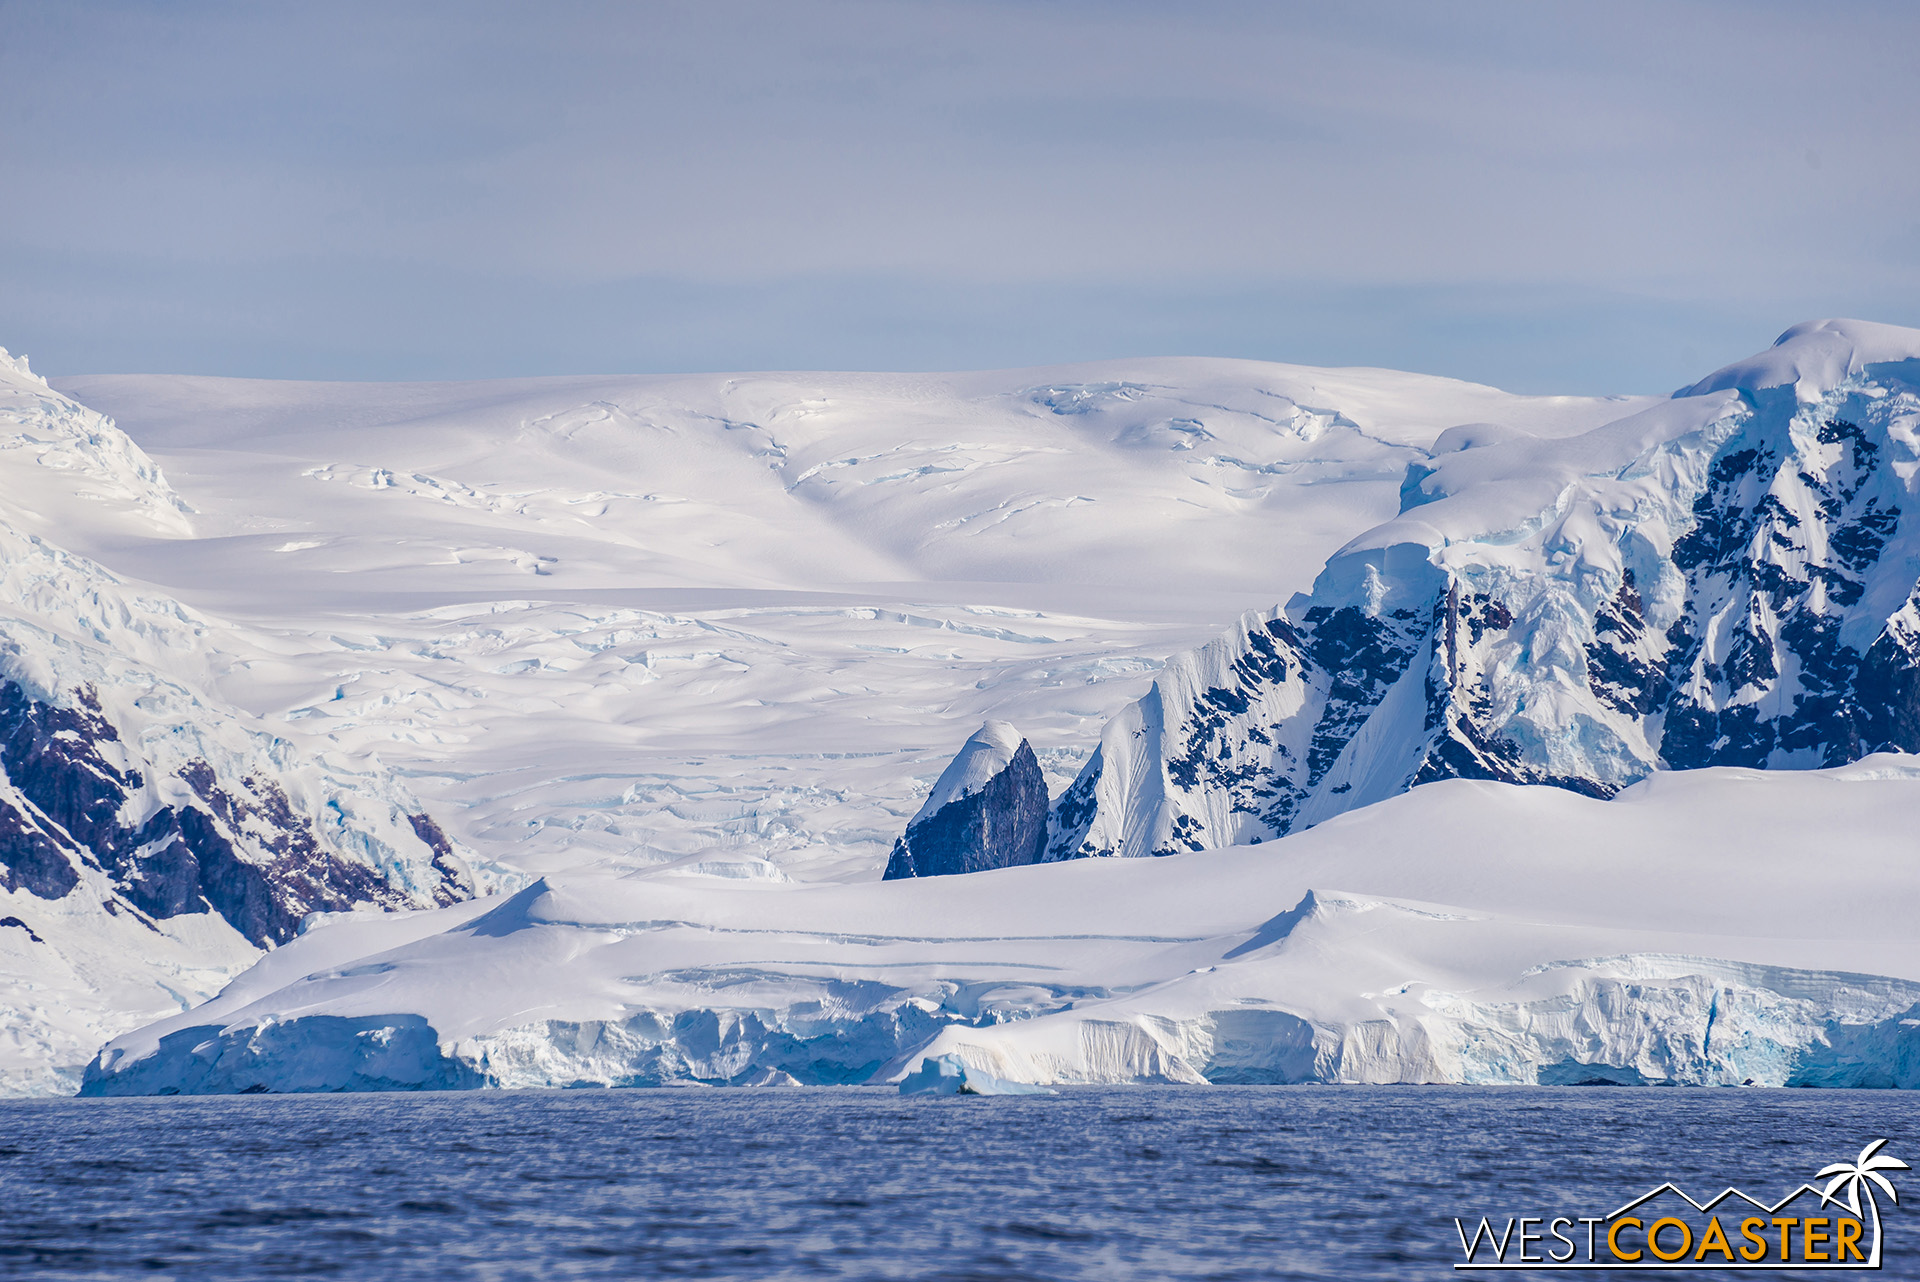 But one more gaze upon the Antarctic continent before we depart.